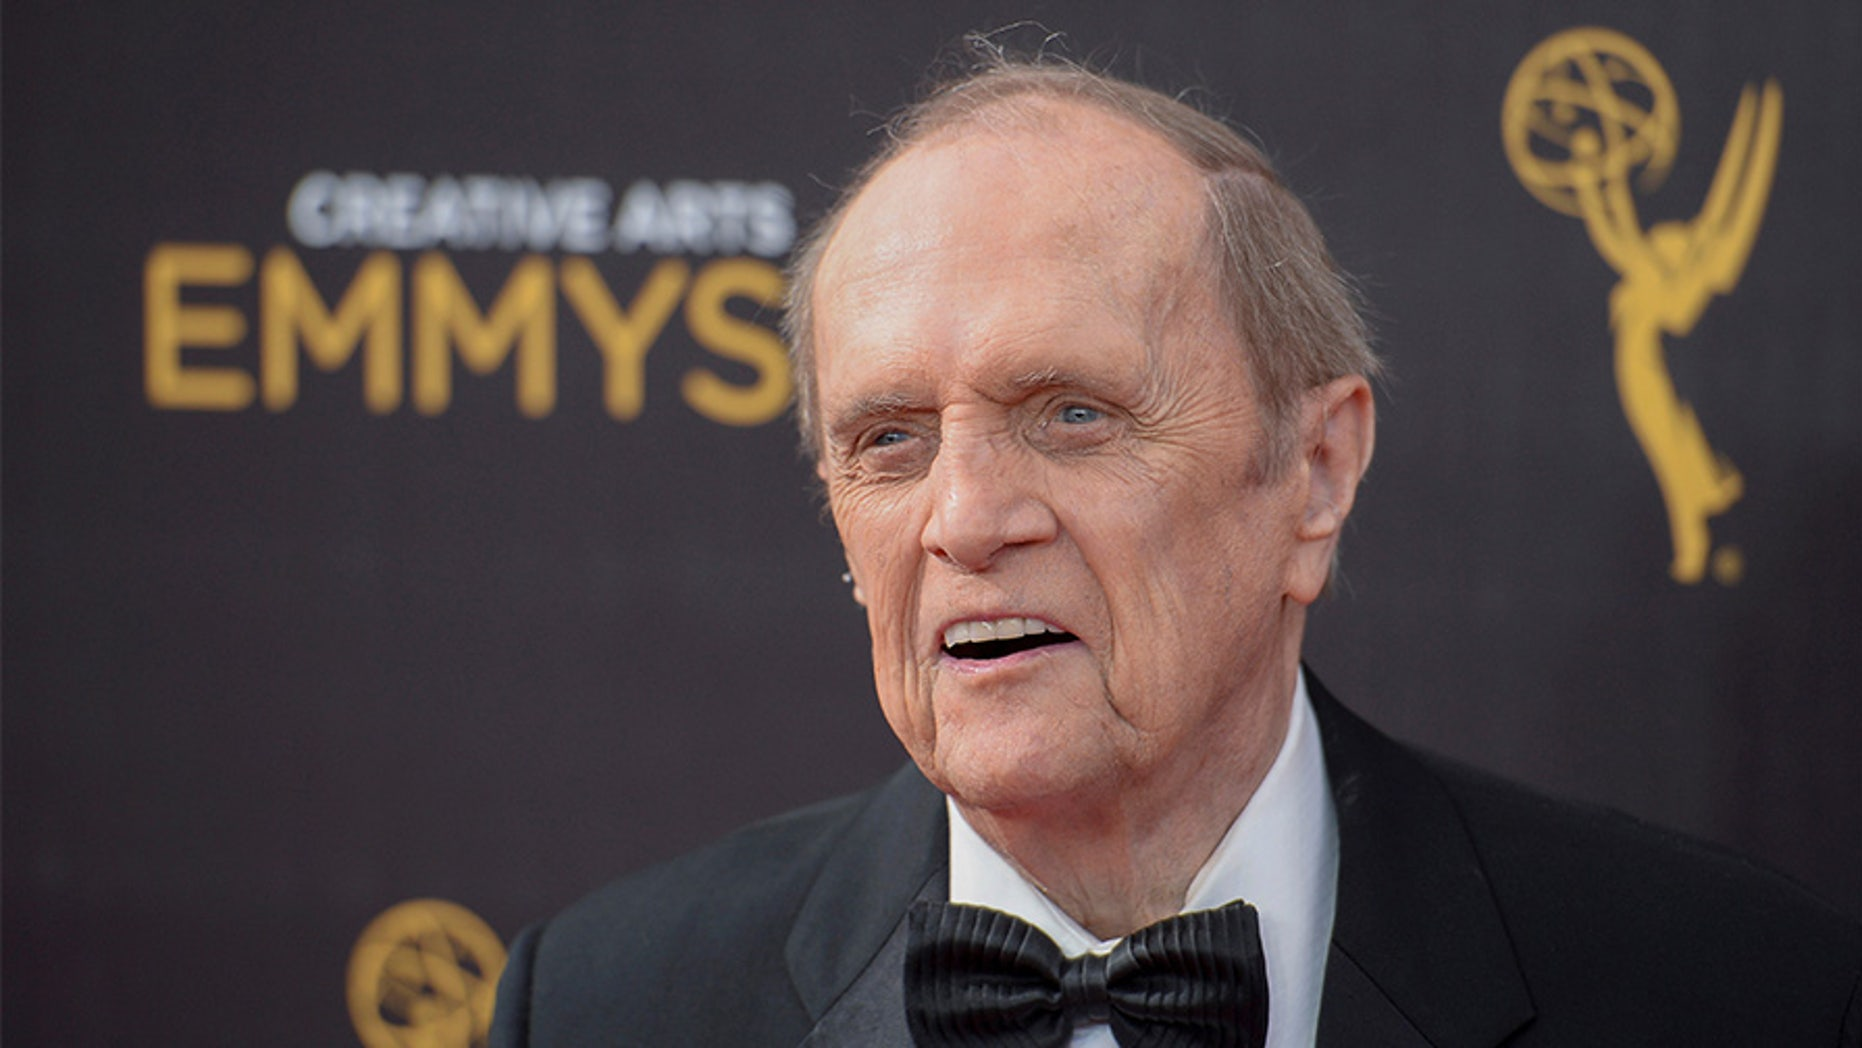 Bob Newhart Talks On Screen Chemistry With Suzanne Pleshette Those Things Are Hard To Find Fox News